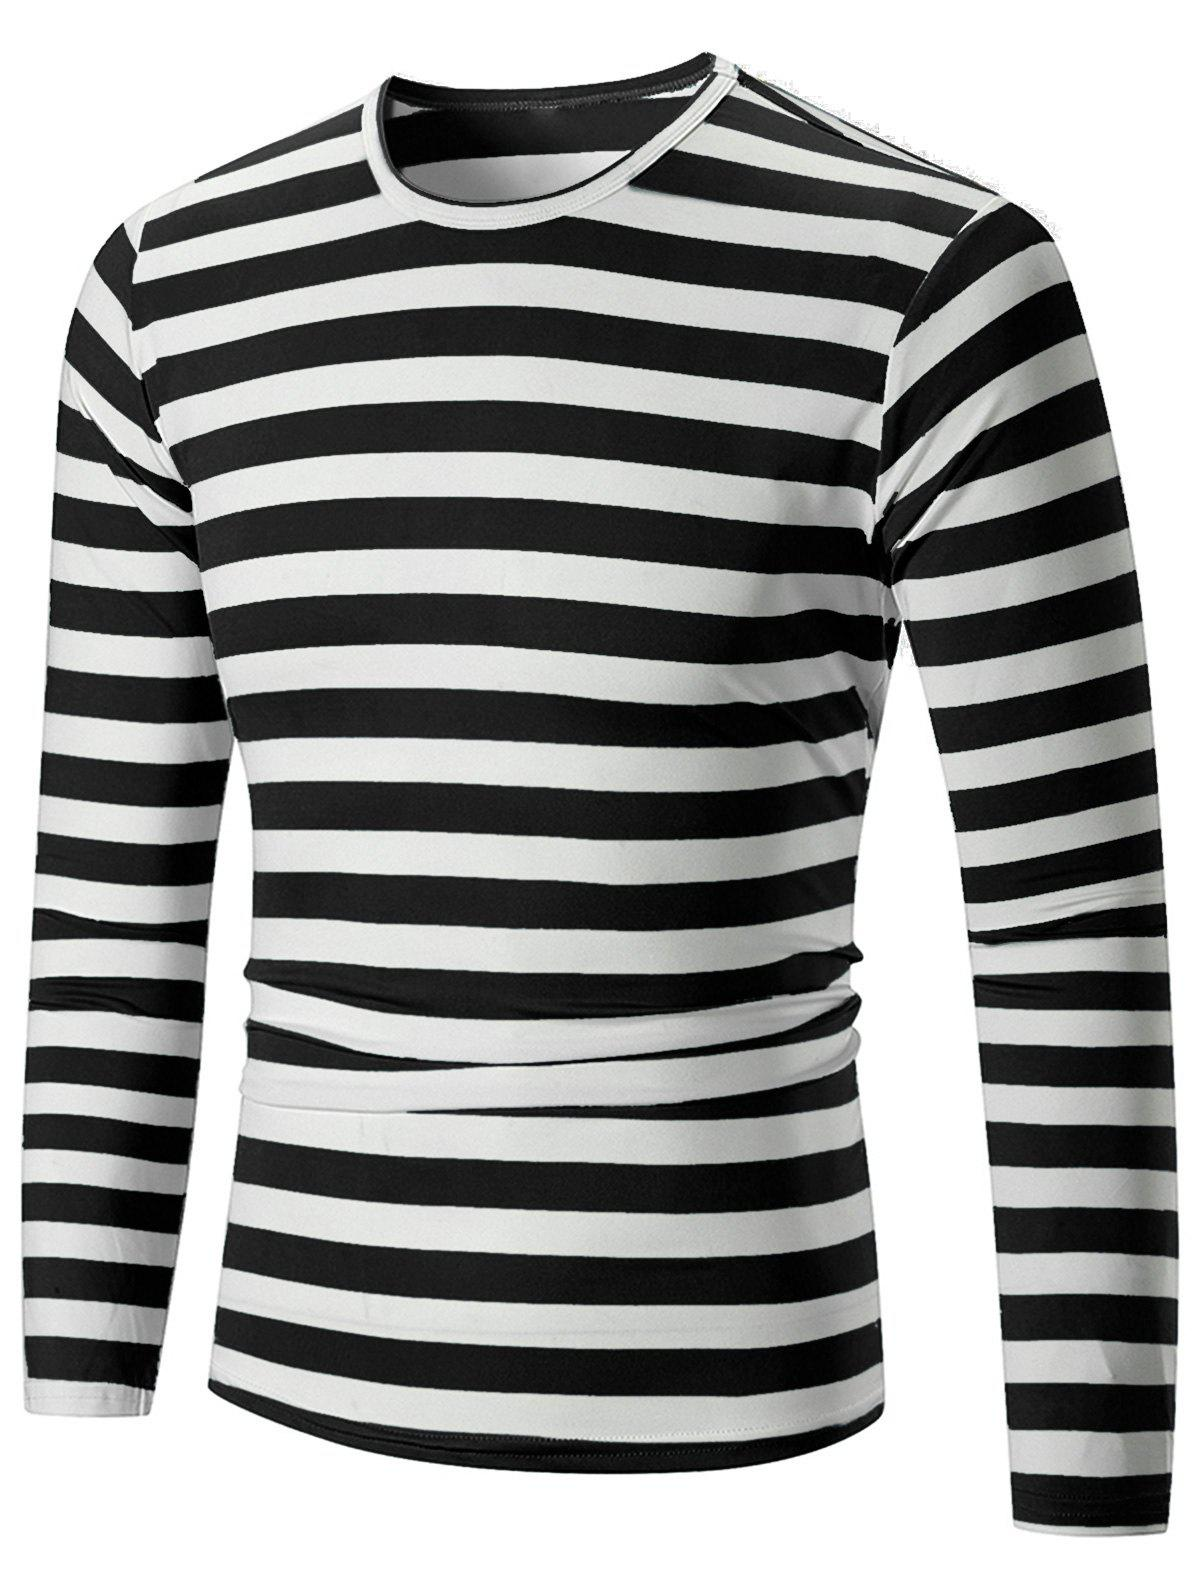 Shops Casual Striped Print Long Sleeve T-shirt